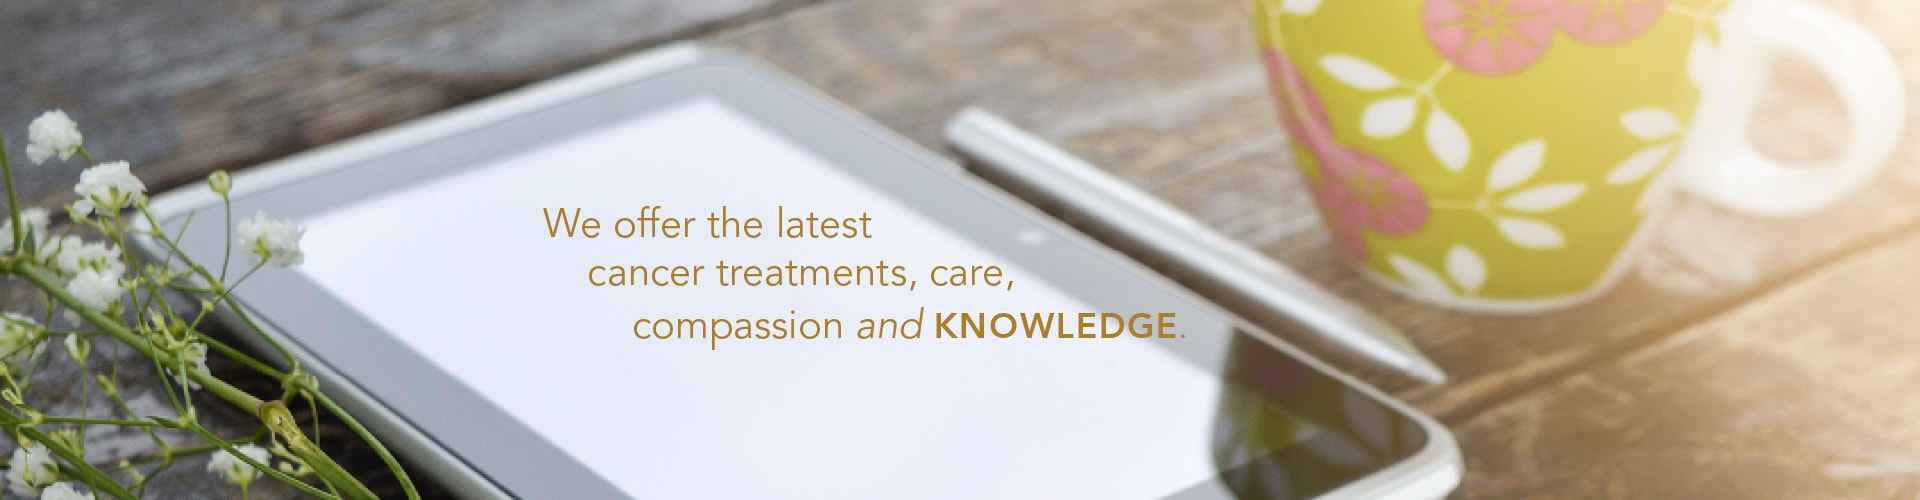 Georgetown Cancer Center Cancer Treatment Resources